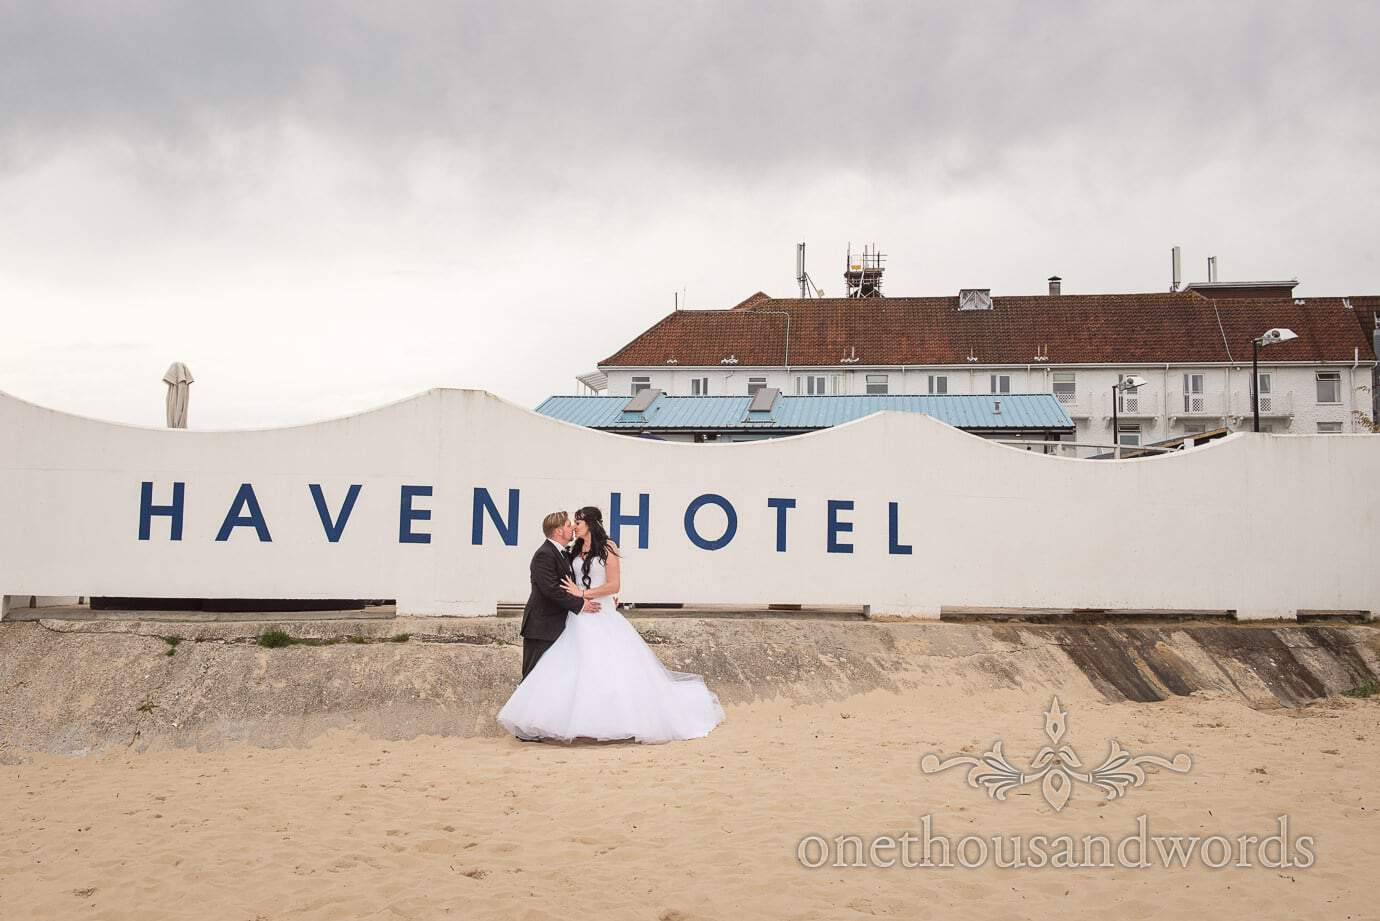 Bride and groom at beach wedding venue Haven Hotel in Poole, Dorset